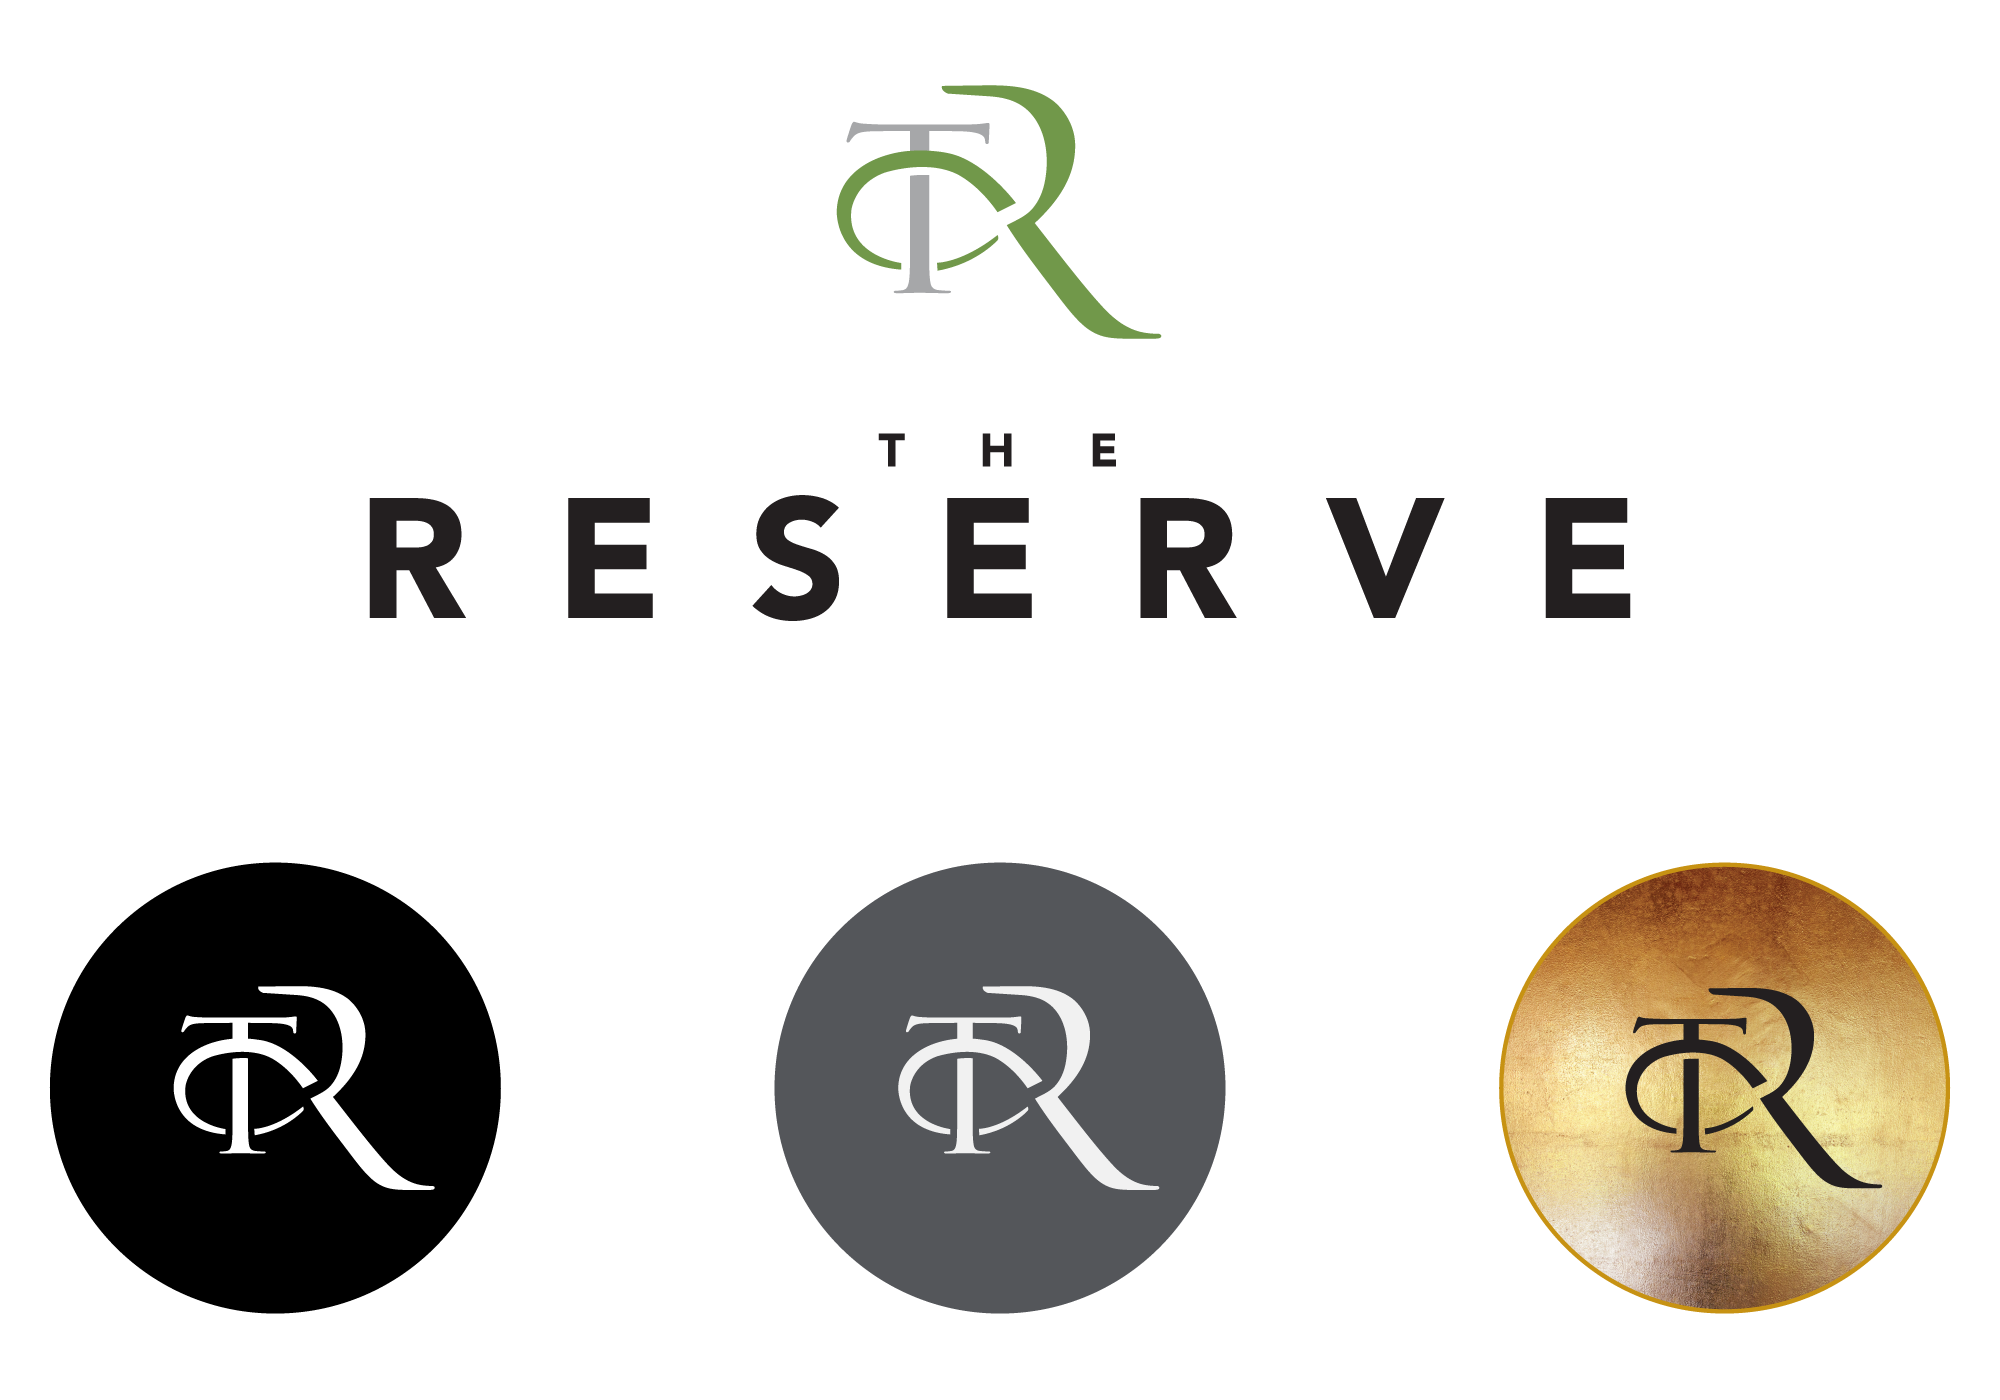 5CG_The_Reserve_Logos